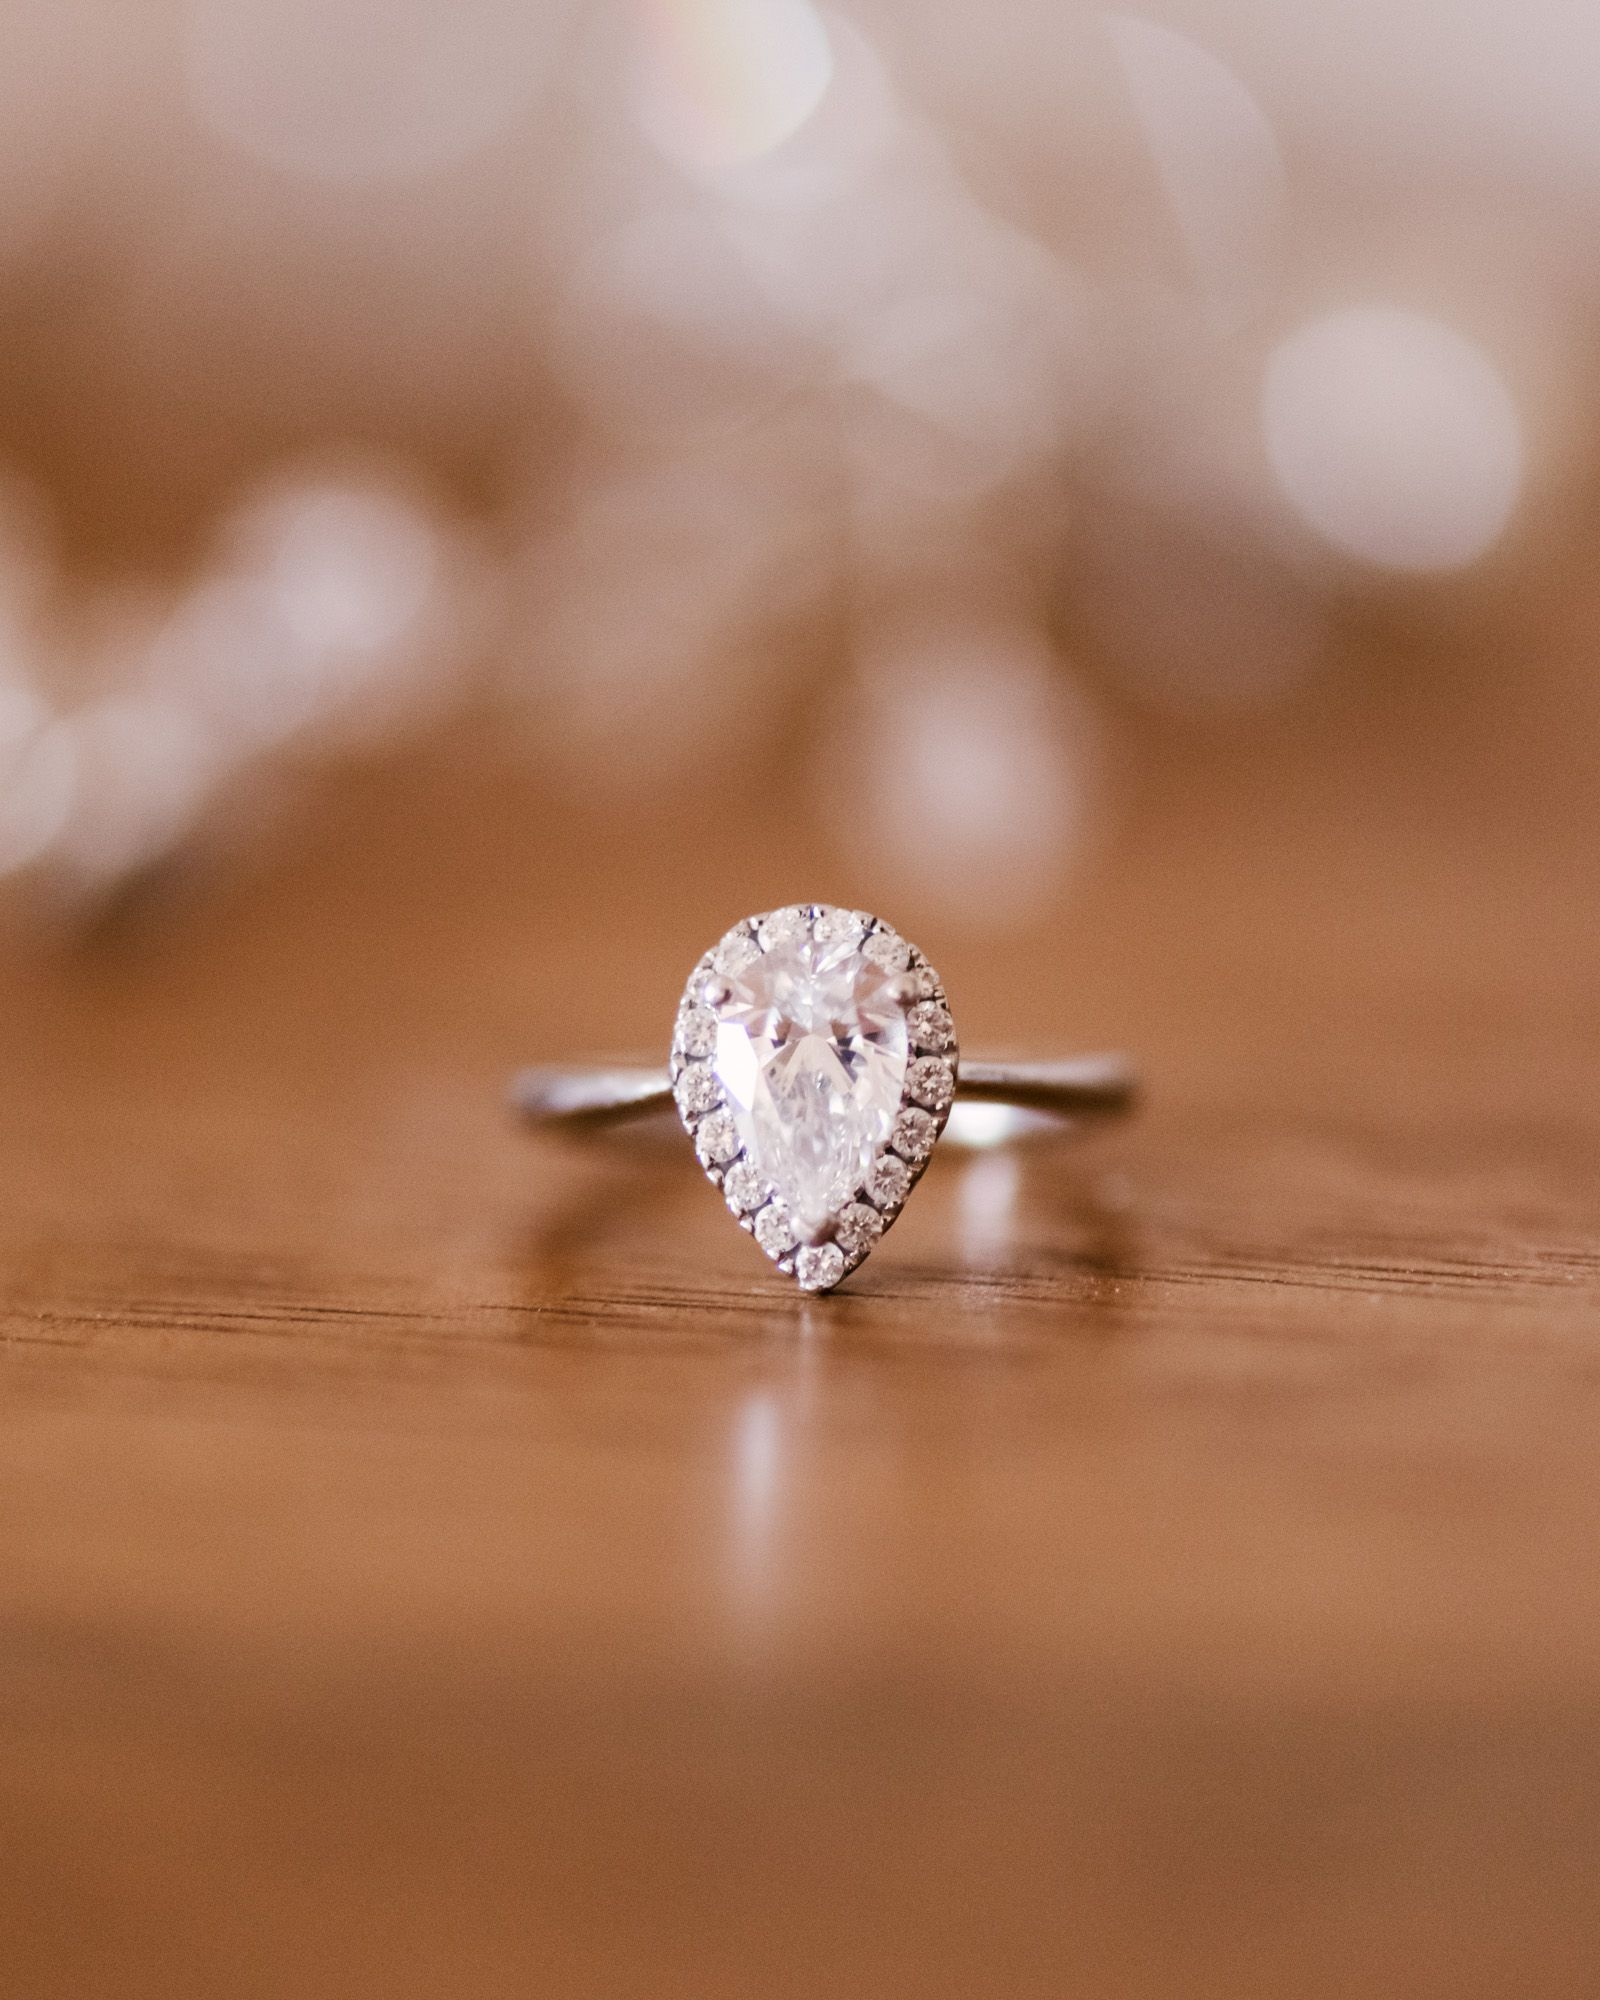 Destination Wedding Wedding Ring Bridal Ring Pictures Bridal